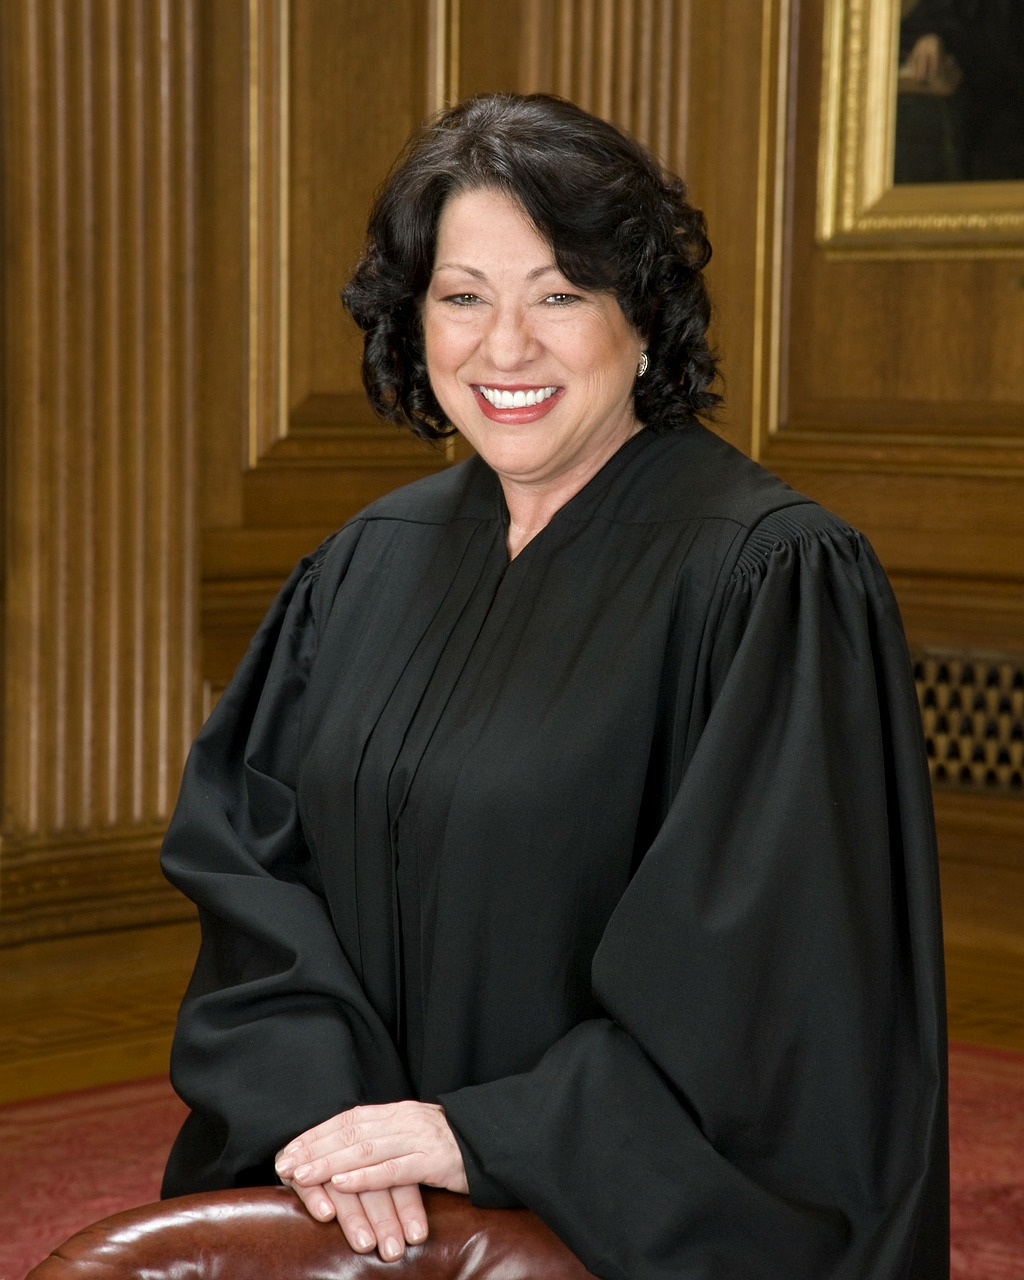 See No Evil: Sotomayor highlights the Roberts Court's blind eye to discrimination